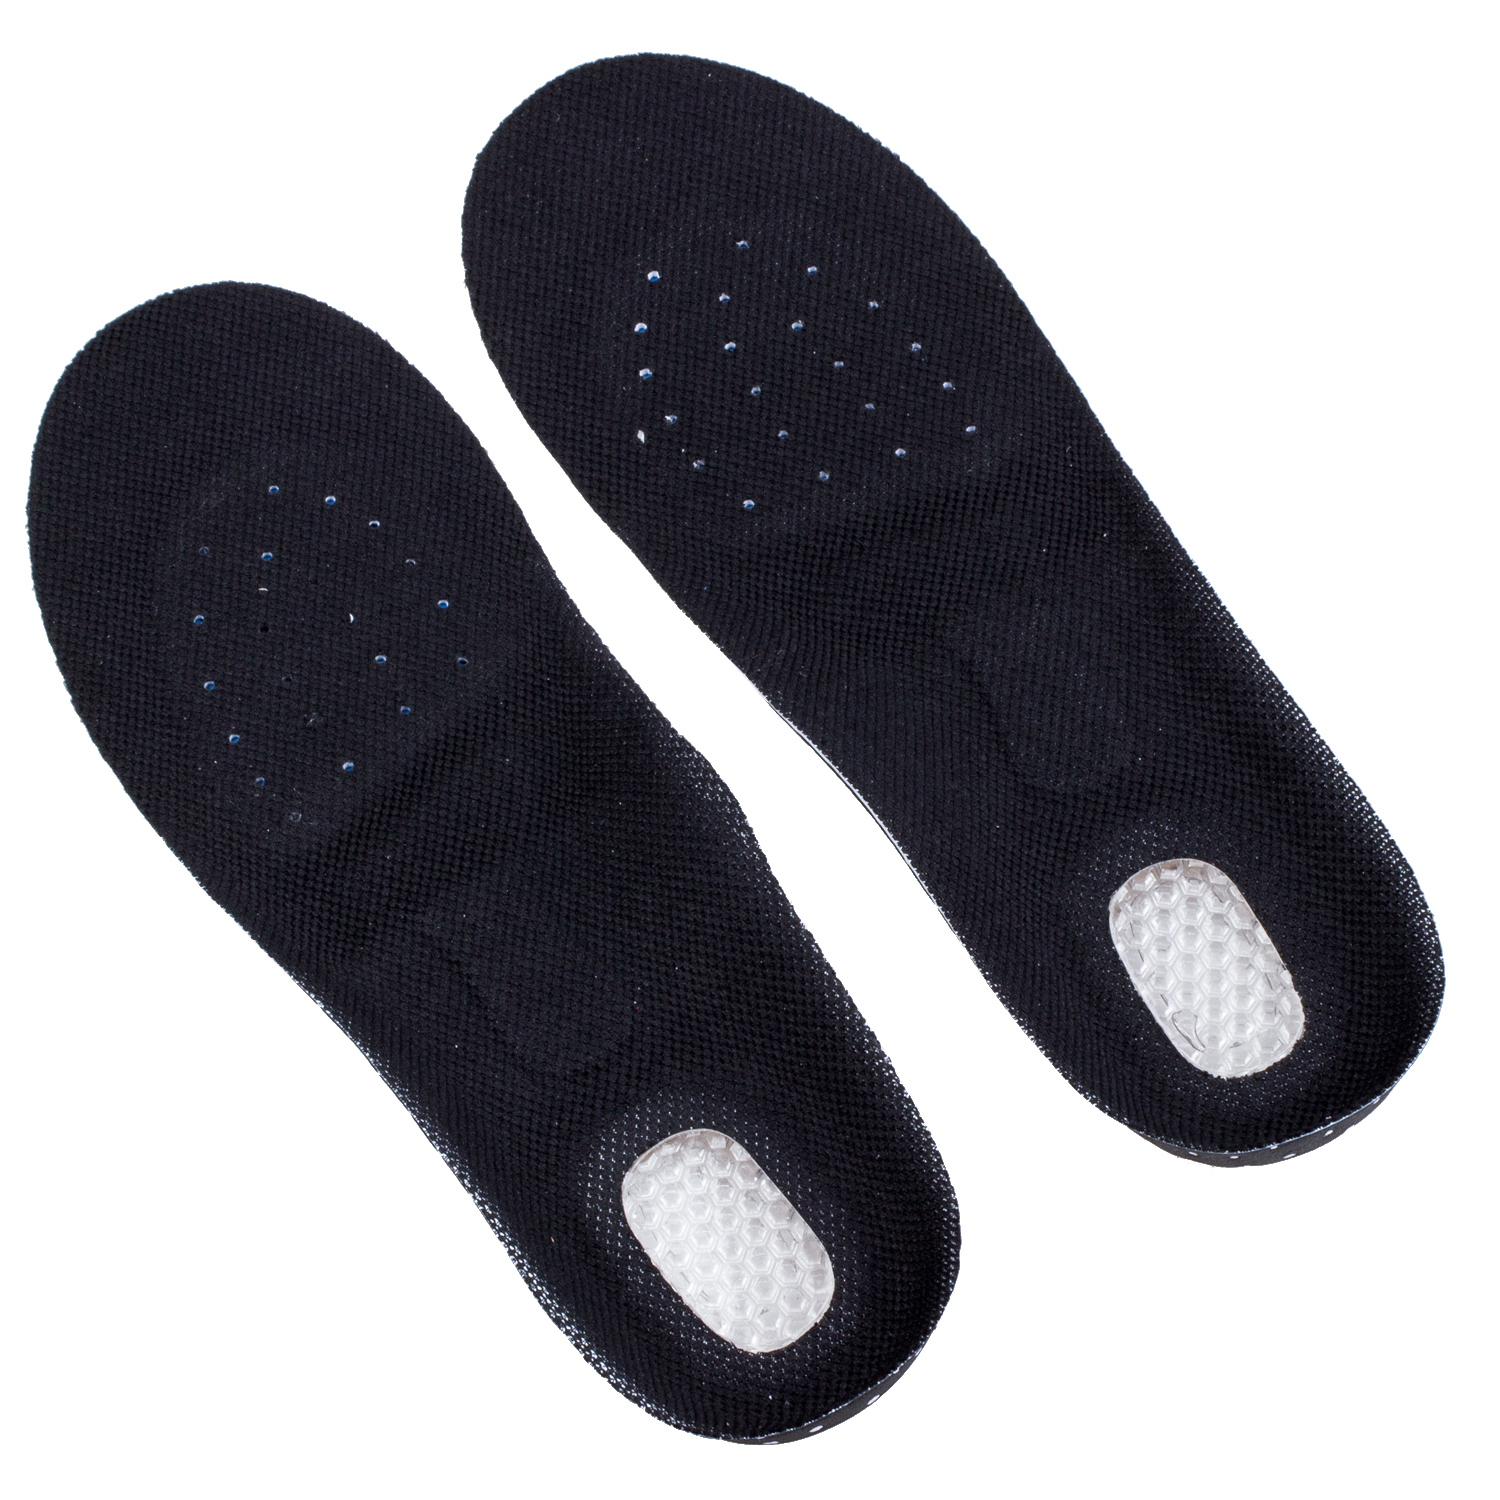 Orthopedic insoles Heel Protection gel Insoles EU EU 35-39 for women 2017 new gel orthopedic insoles massage